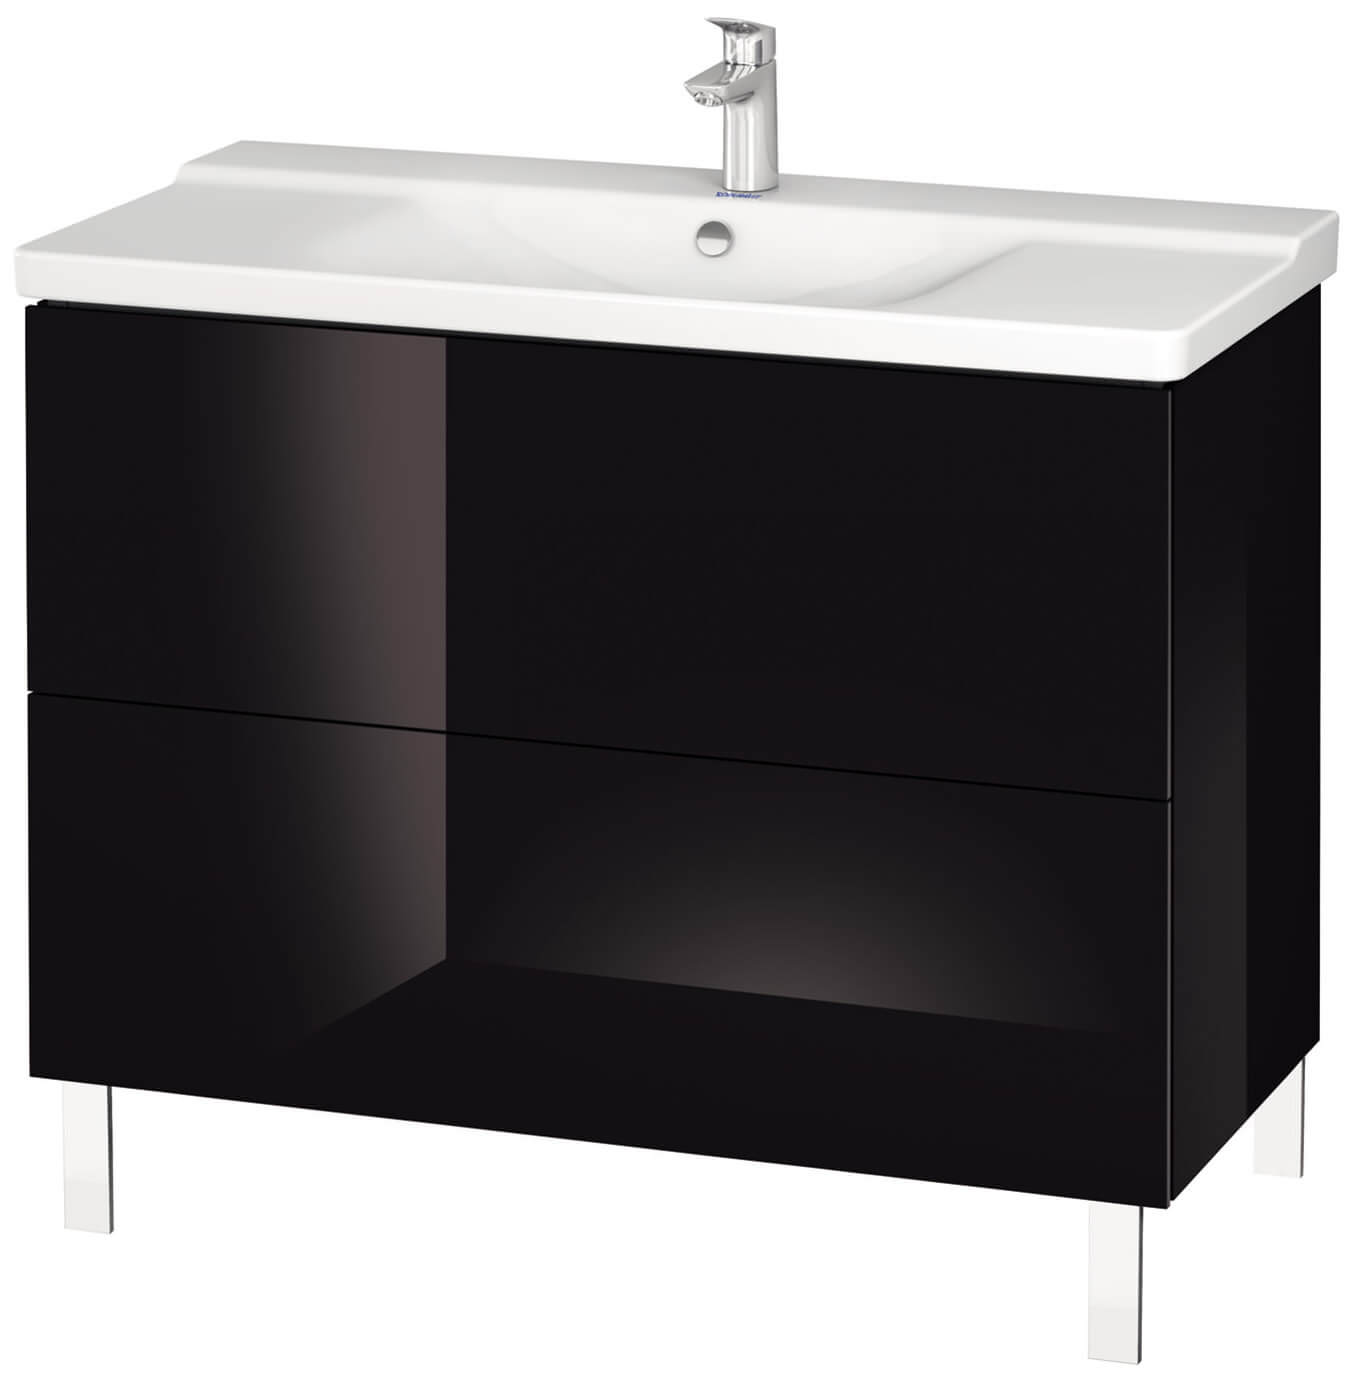 duravit l cube 1020mm floor standing vanity unit. Black Bedroom Furniture Sets. Home Design Ideas